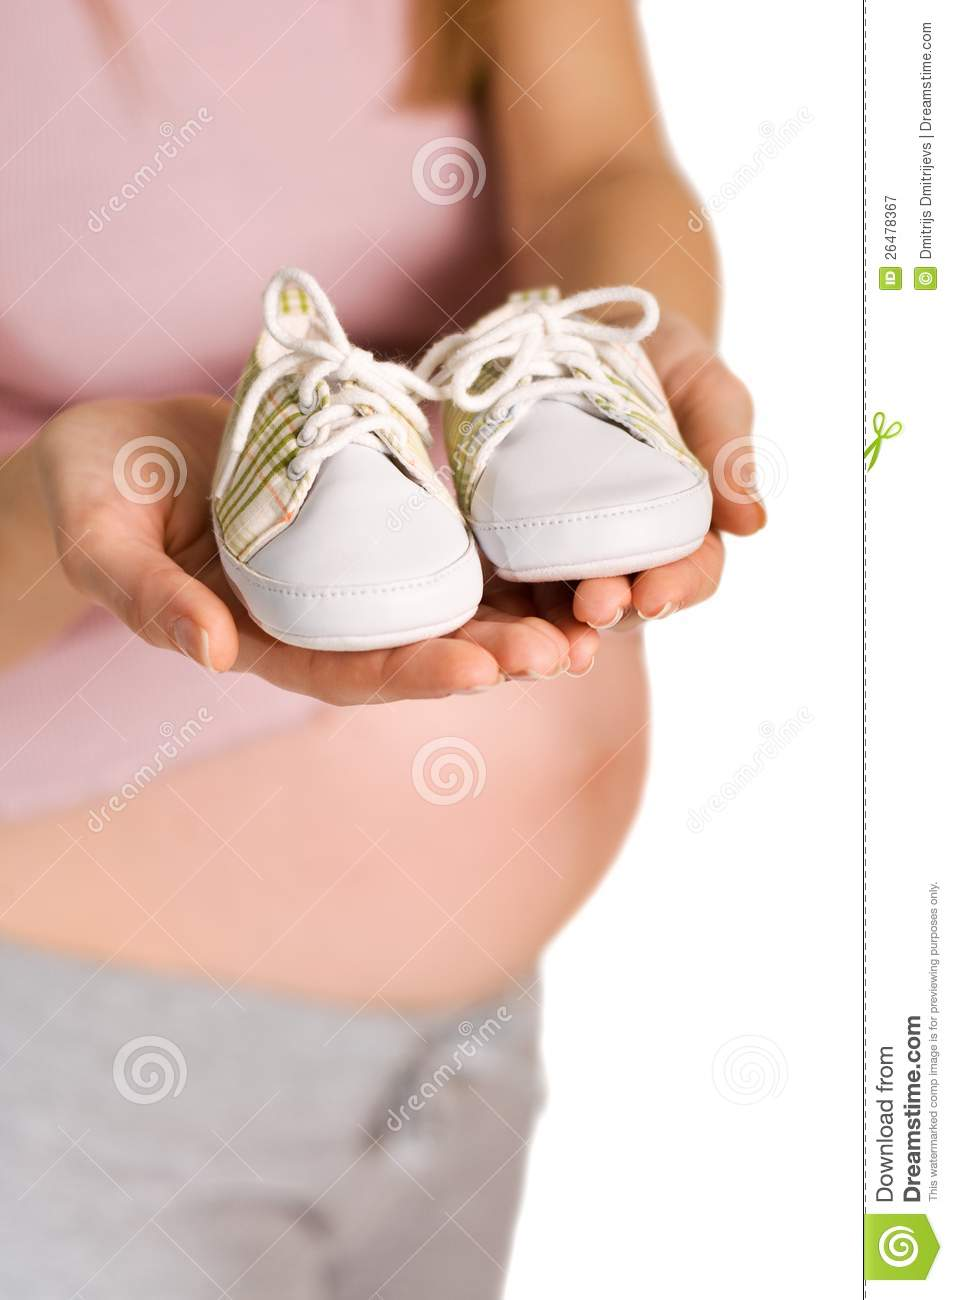 Pregnant woman holding pair of white shoes for baby (Shallow dof